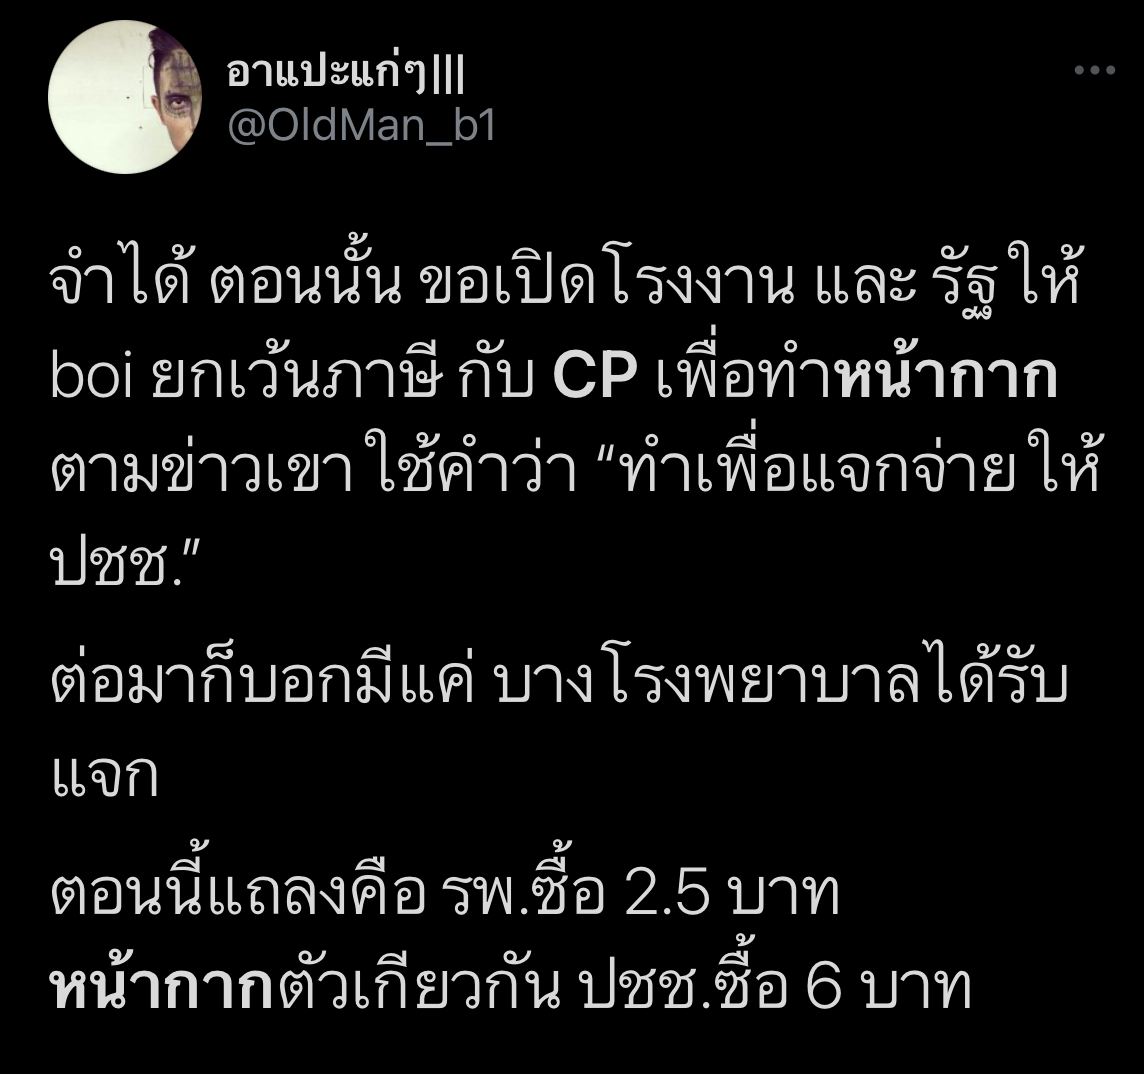 Twitter Call our accusation on CP for overpriced masks